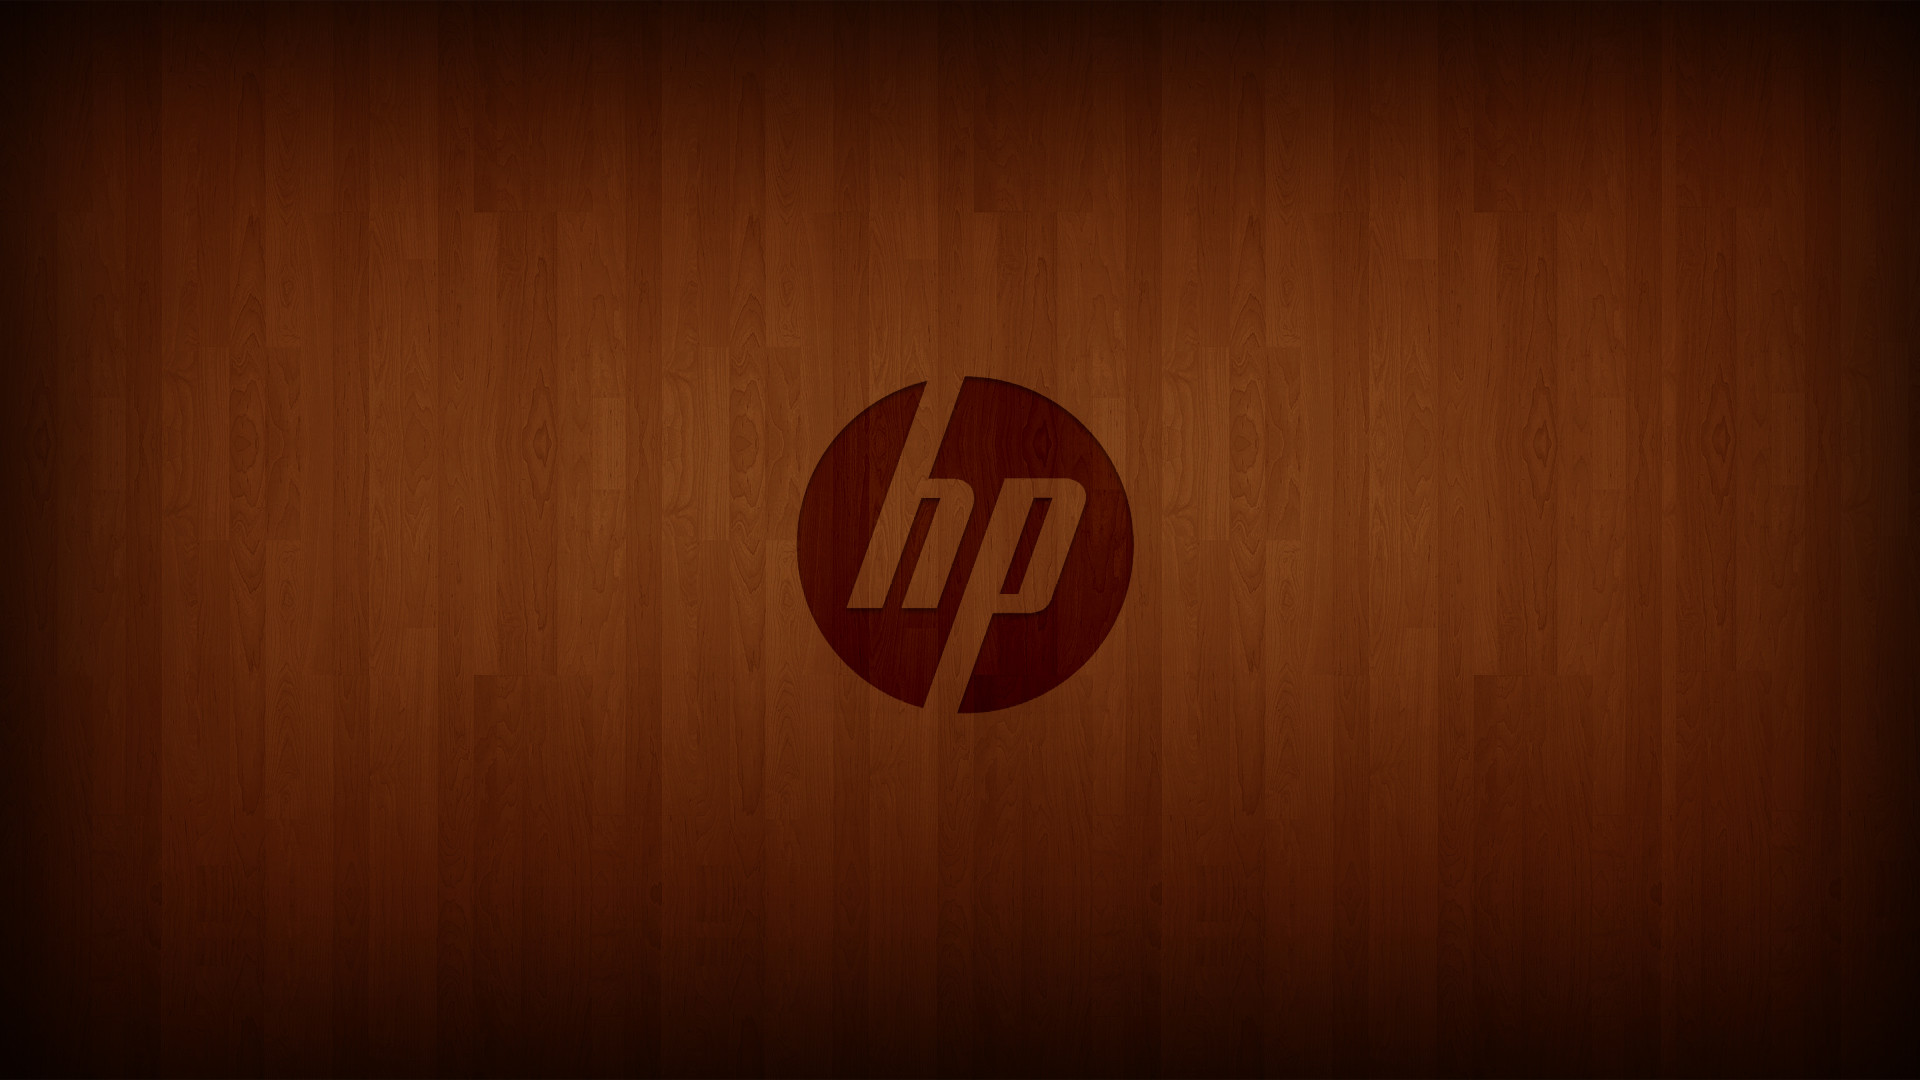 1920x1080 Pictures Download Hp Logo Wallpapers Hd High Definition Amazing Cool Apple Tablet Free